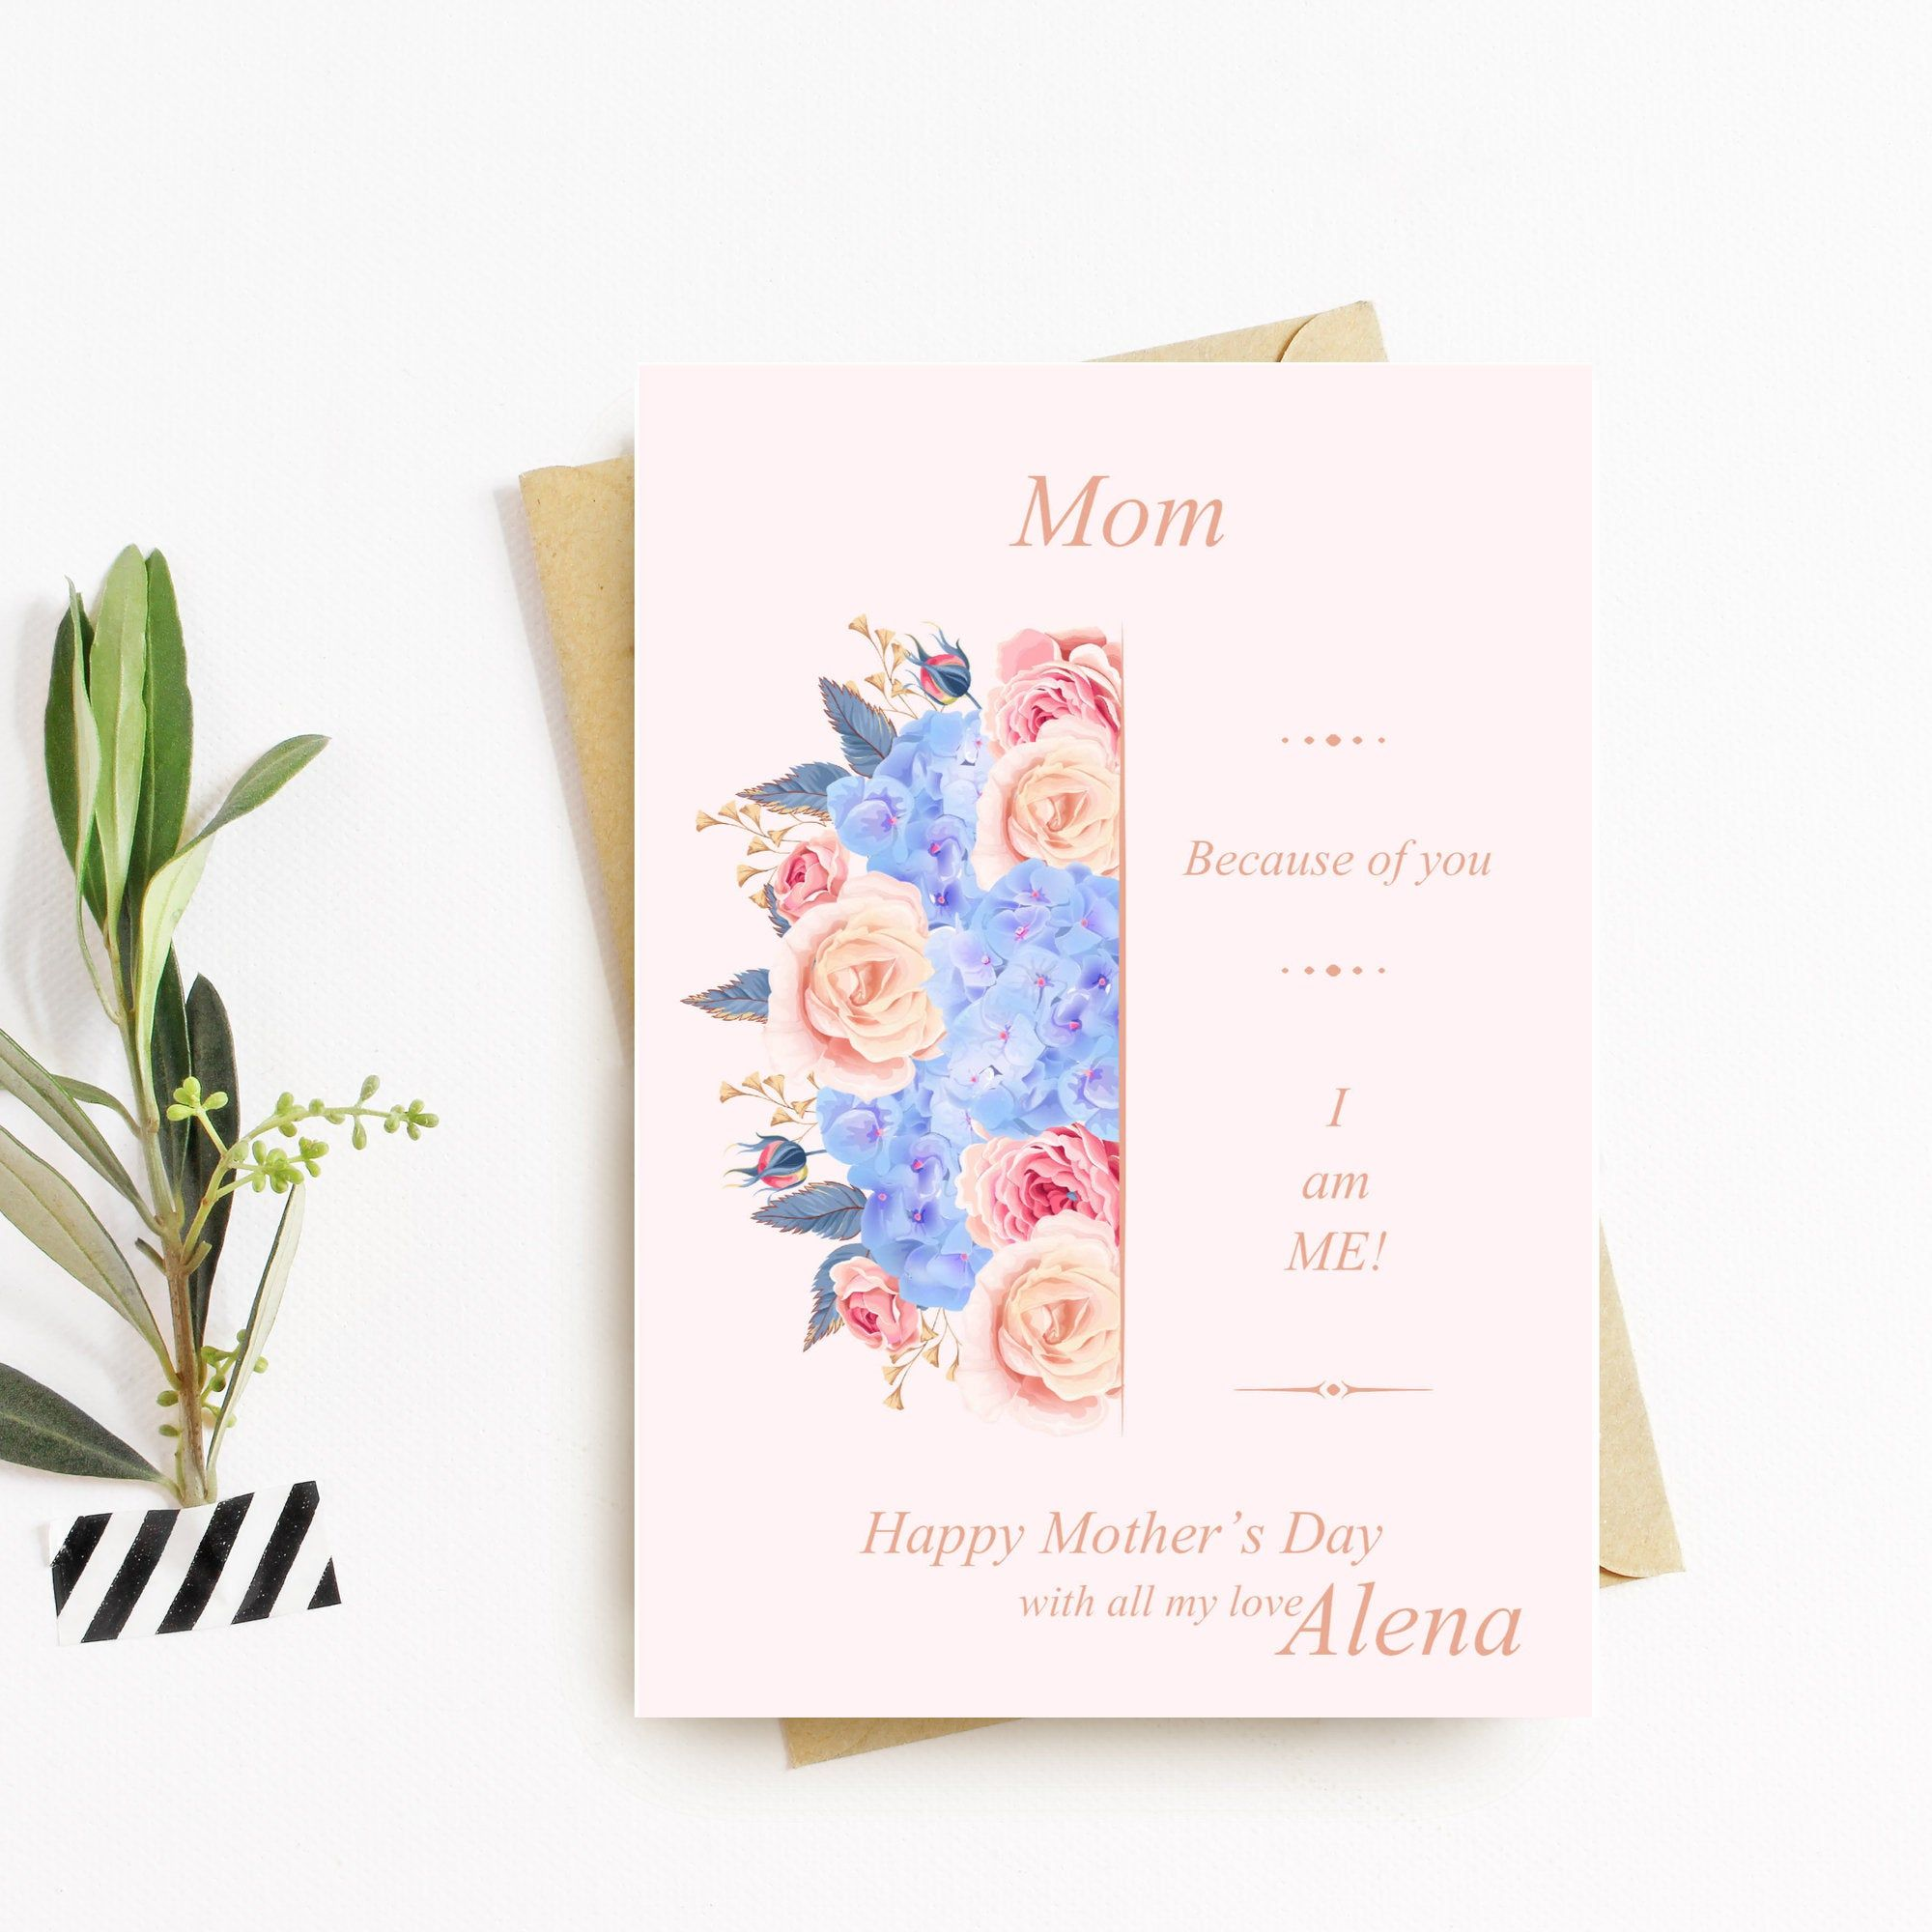 Happy mothers day because of you digital download